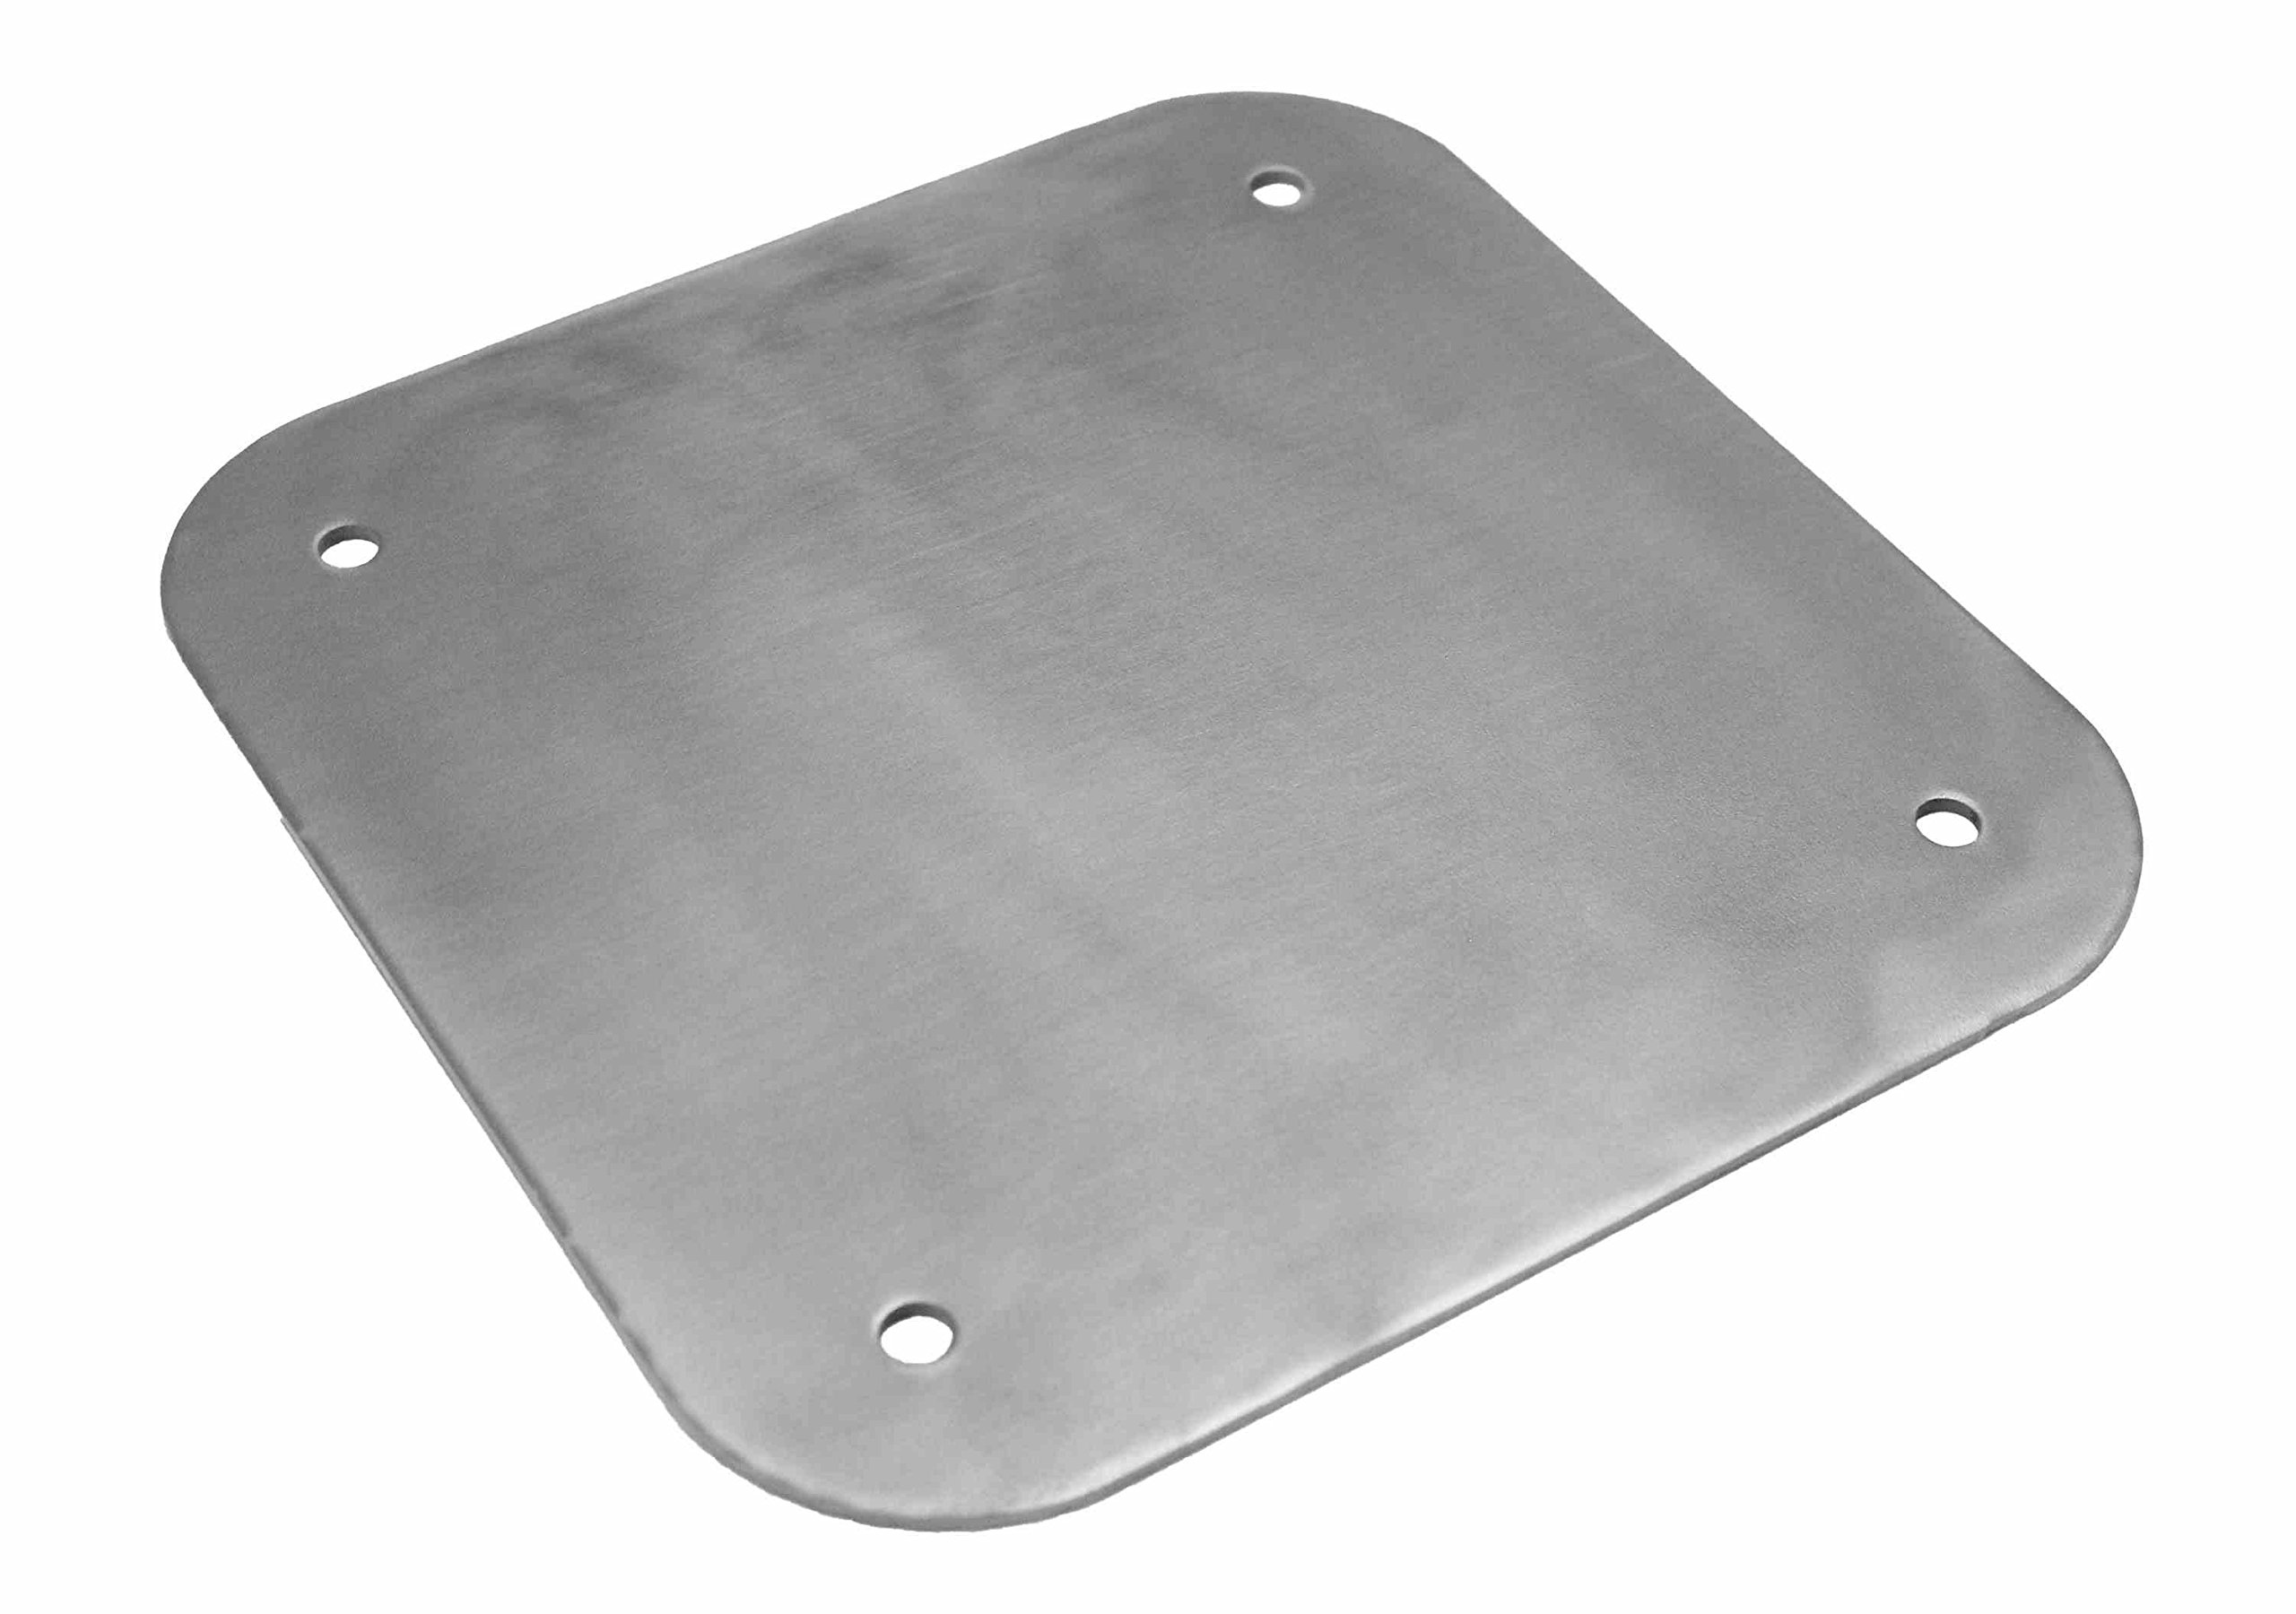 MMP-2 Magnetic Stainless Steel Boat Mount Plate(-black)